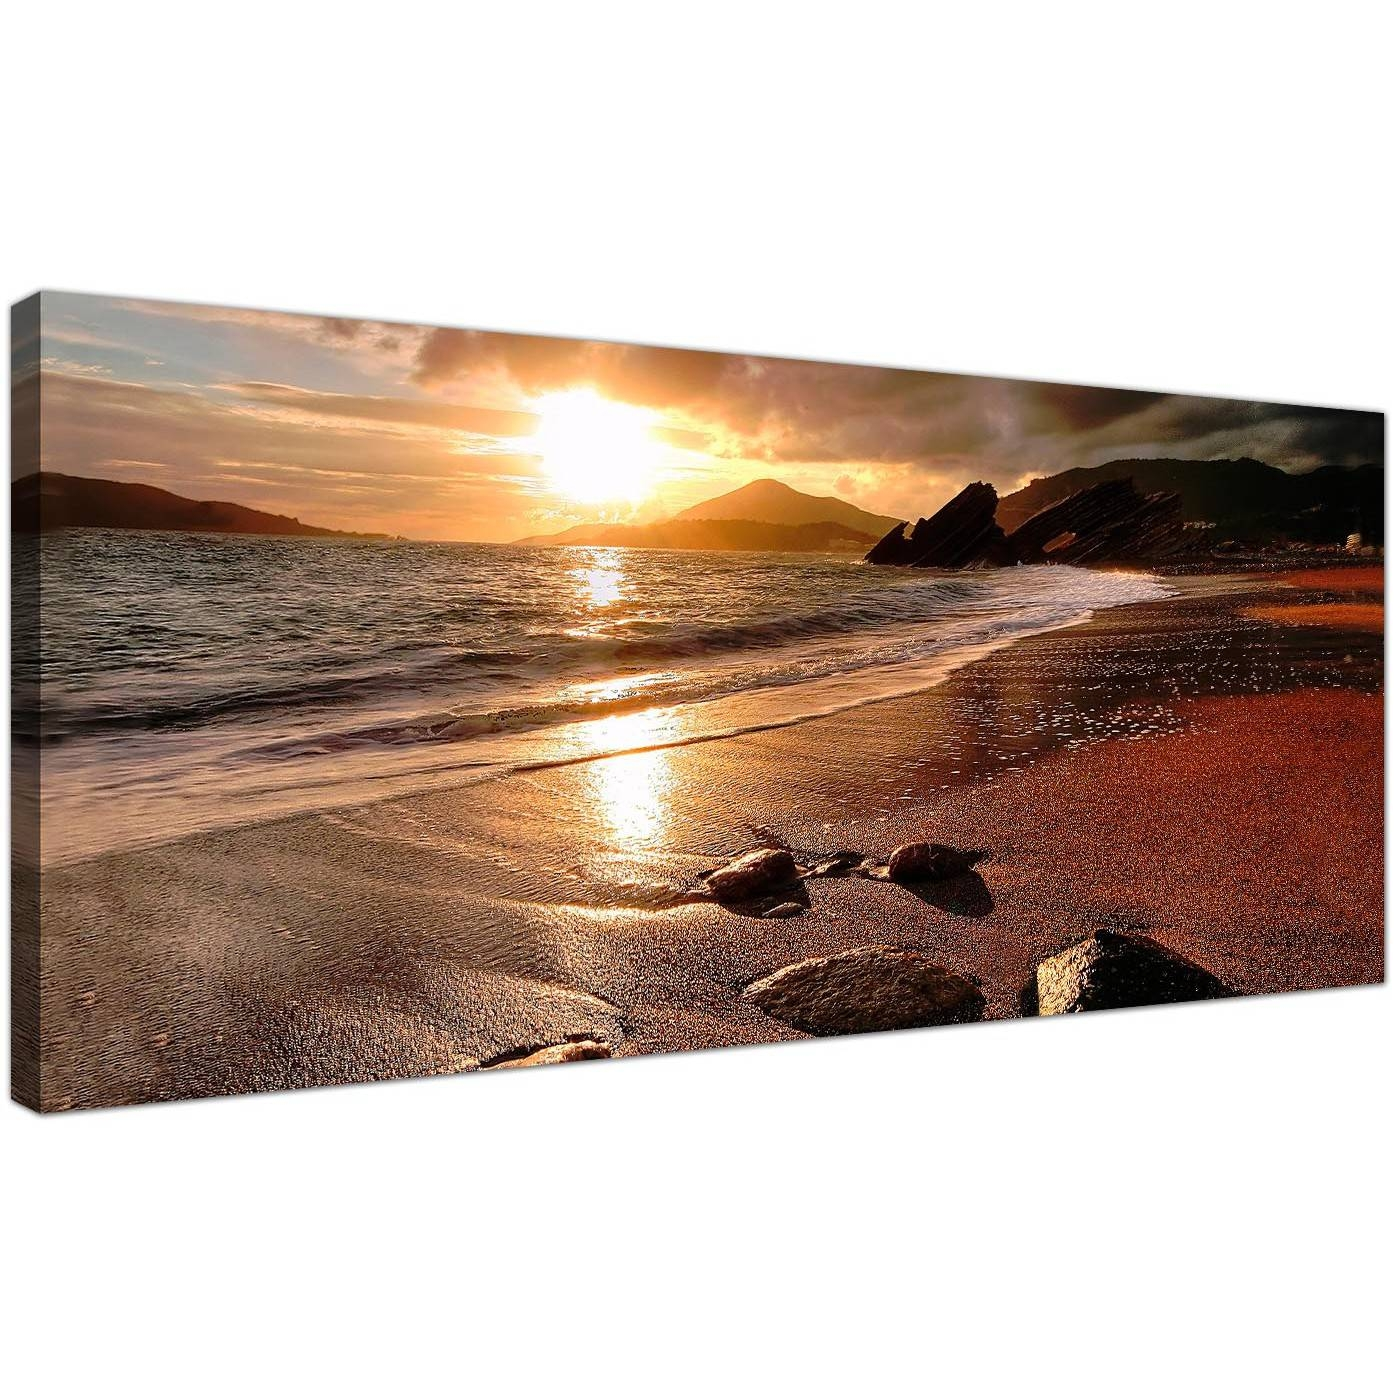 Wide Canvas Prints Of A Beach Sunset For Your Living Room In Latest Huge Canvas Wall Art (View 15 of 15)